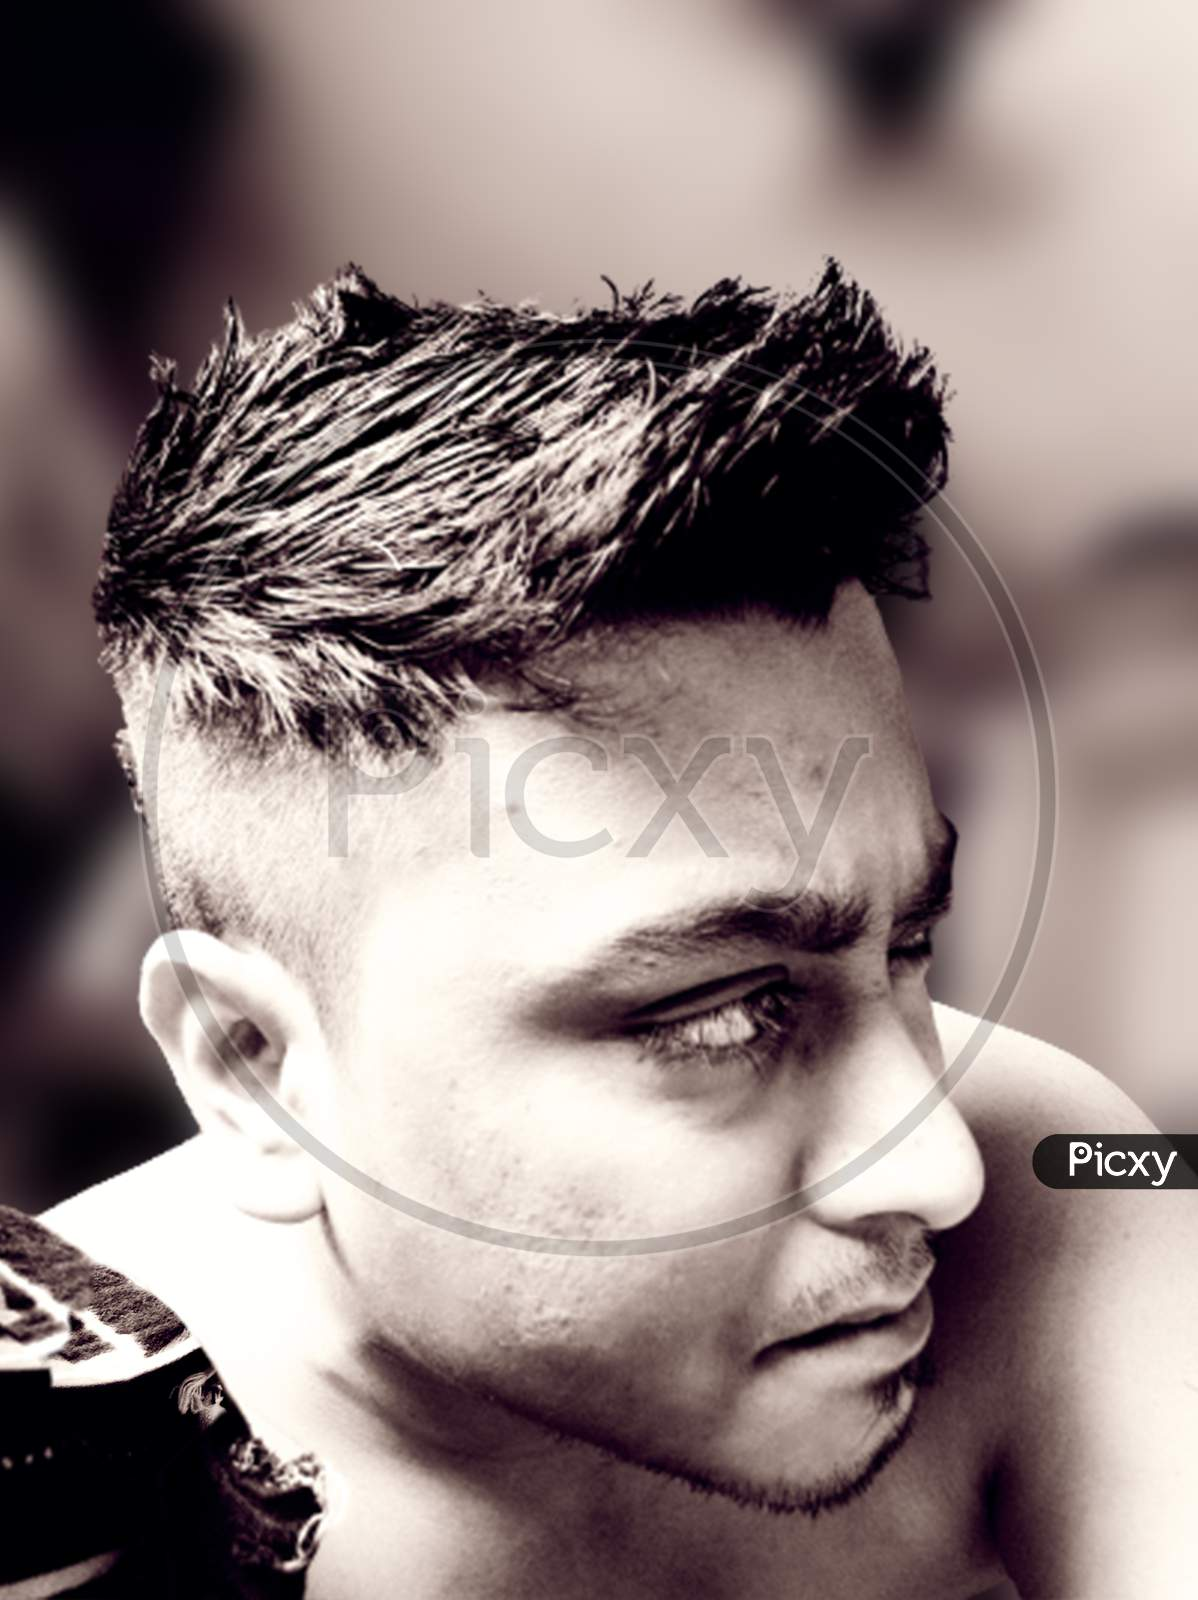 Image Of Man With Spike Cut Hairstyle Nb889195 Picxy